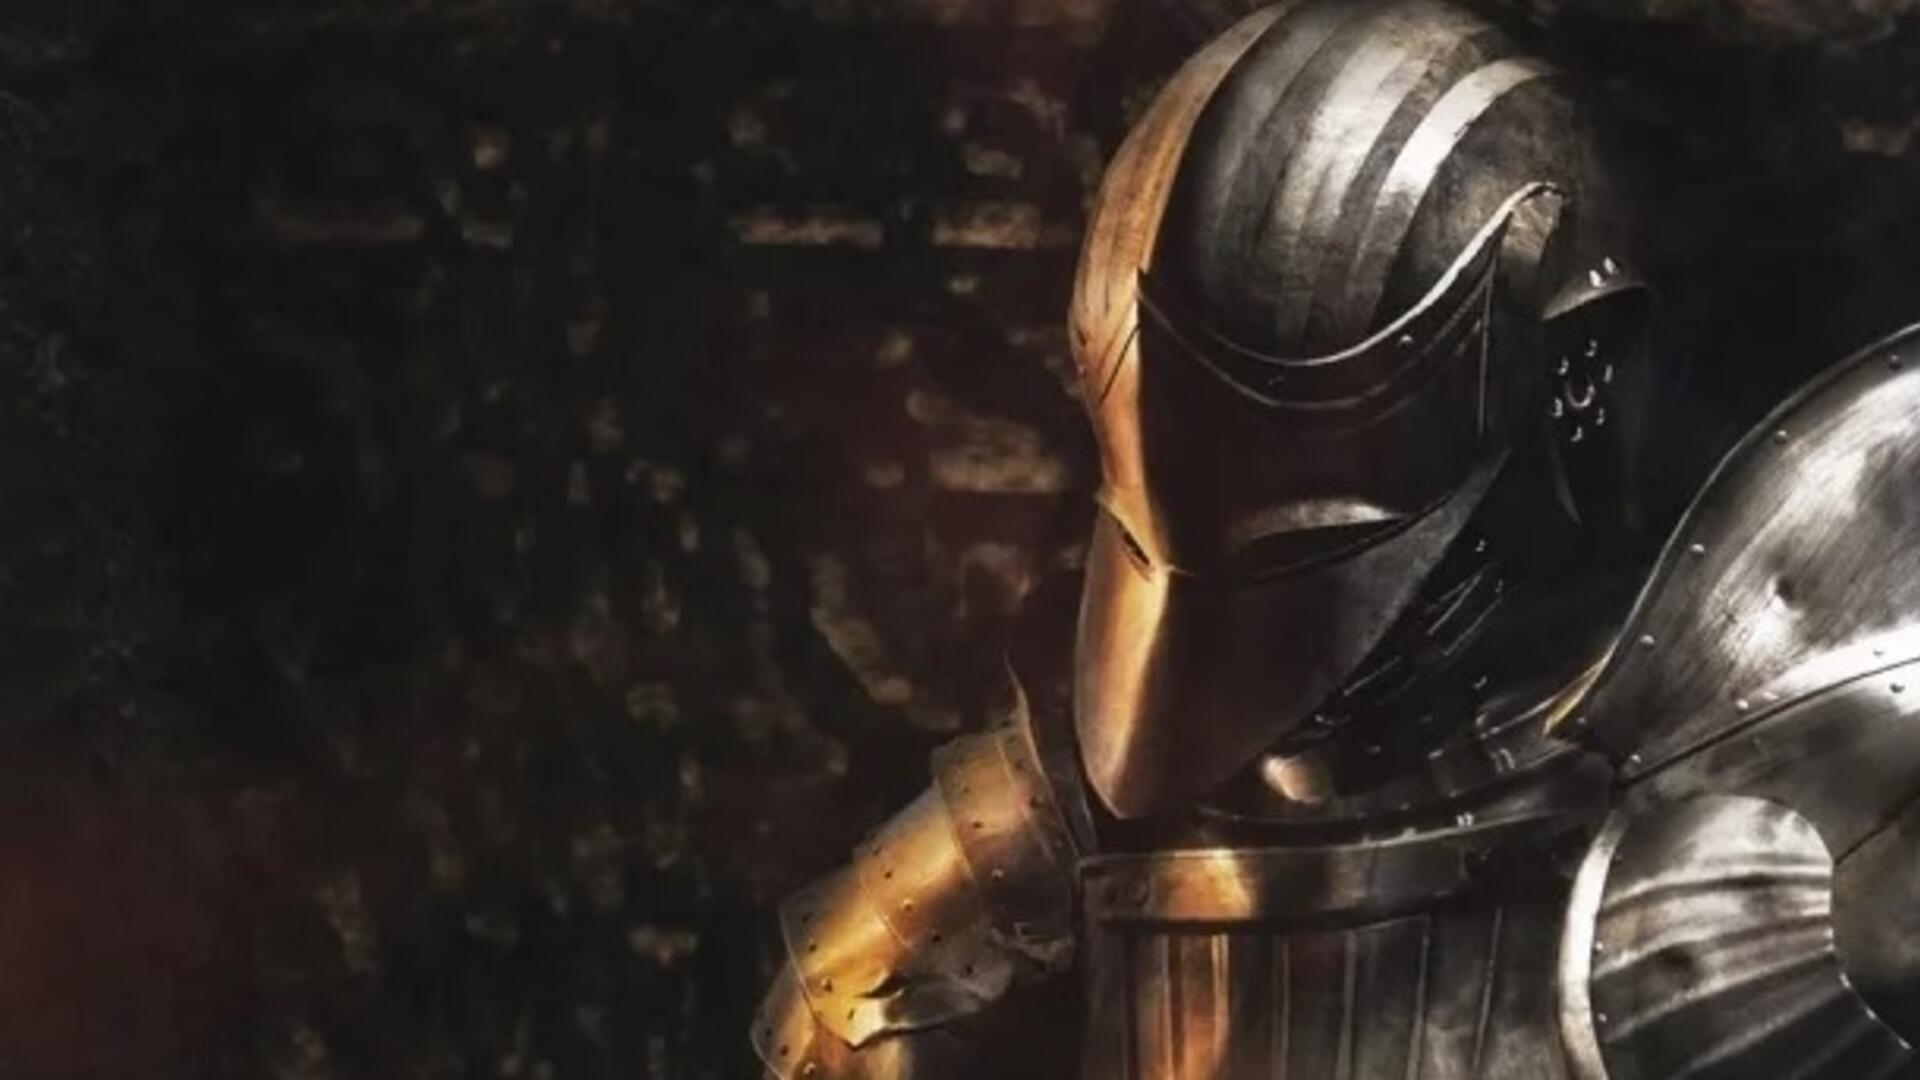 Demon's Souls Players Bid Farewell to a Beautiful and Painful Part of Their Past